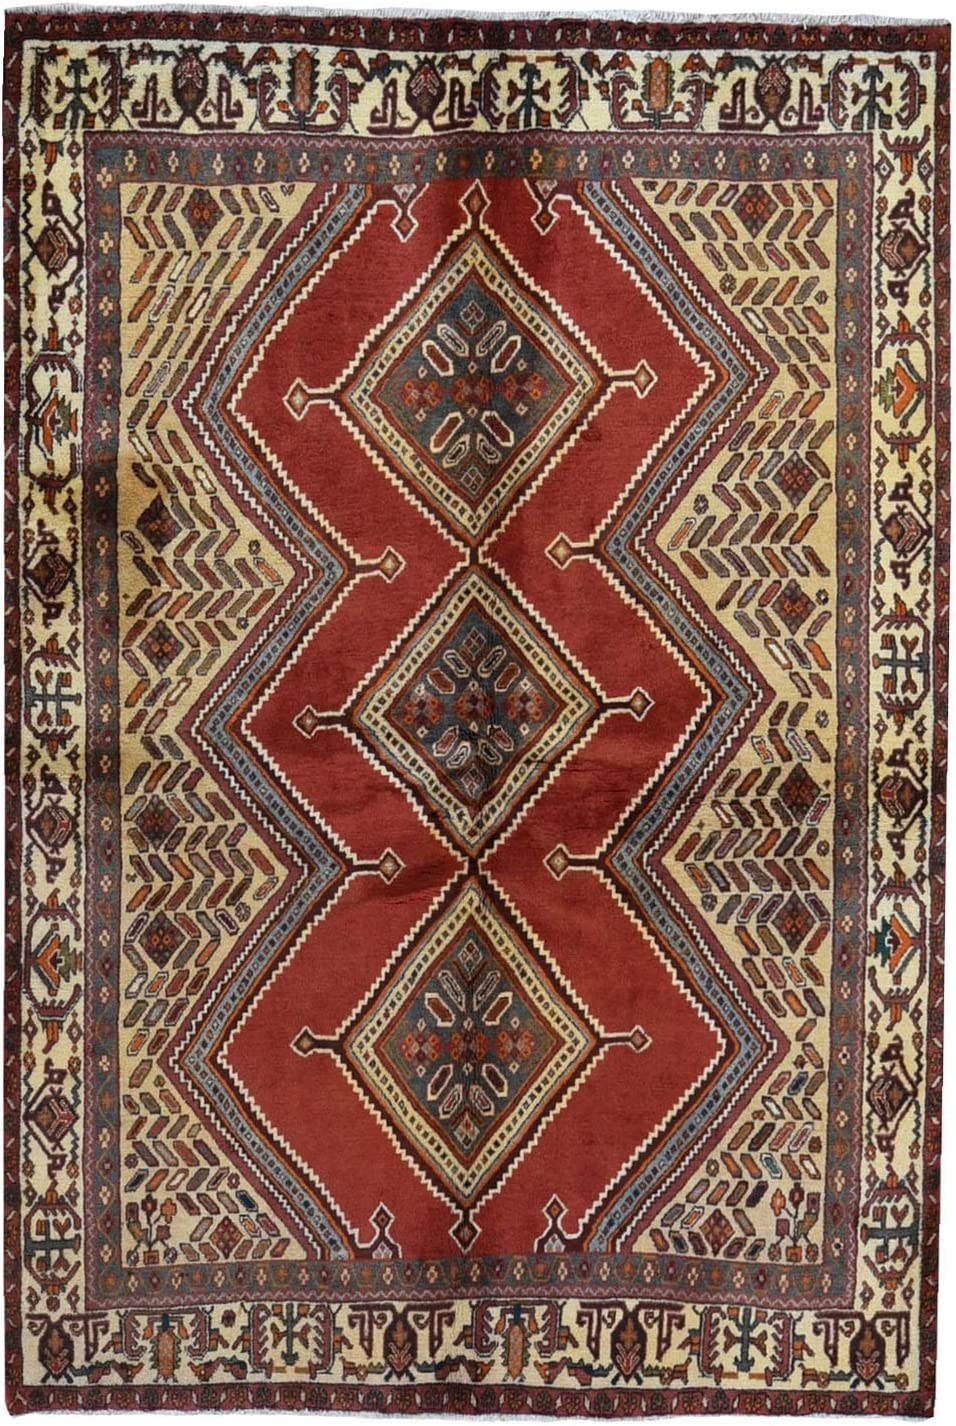 Shahbanu Rugs New Farsian Serrated Challenge the lowest price of Japan Limited time cheap sale Baktiarjoon Design Medallion